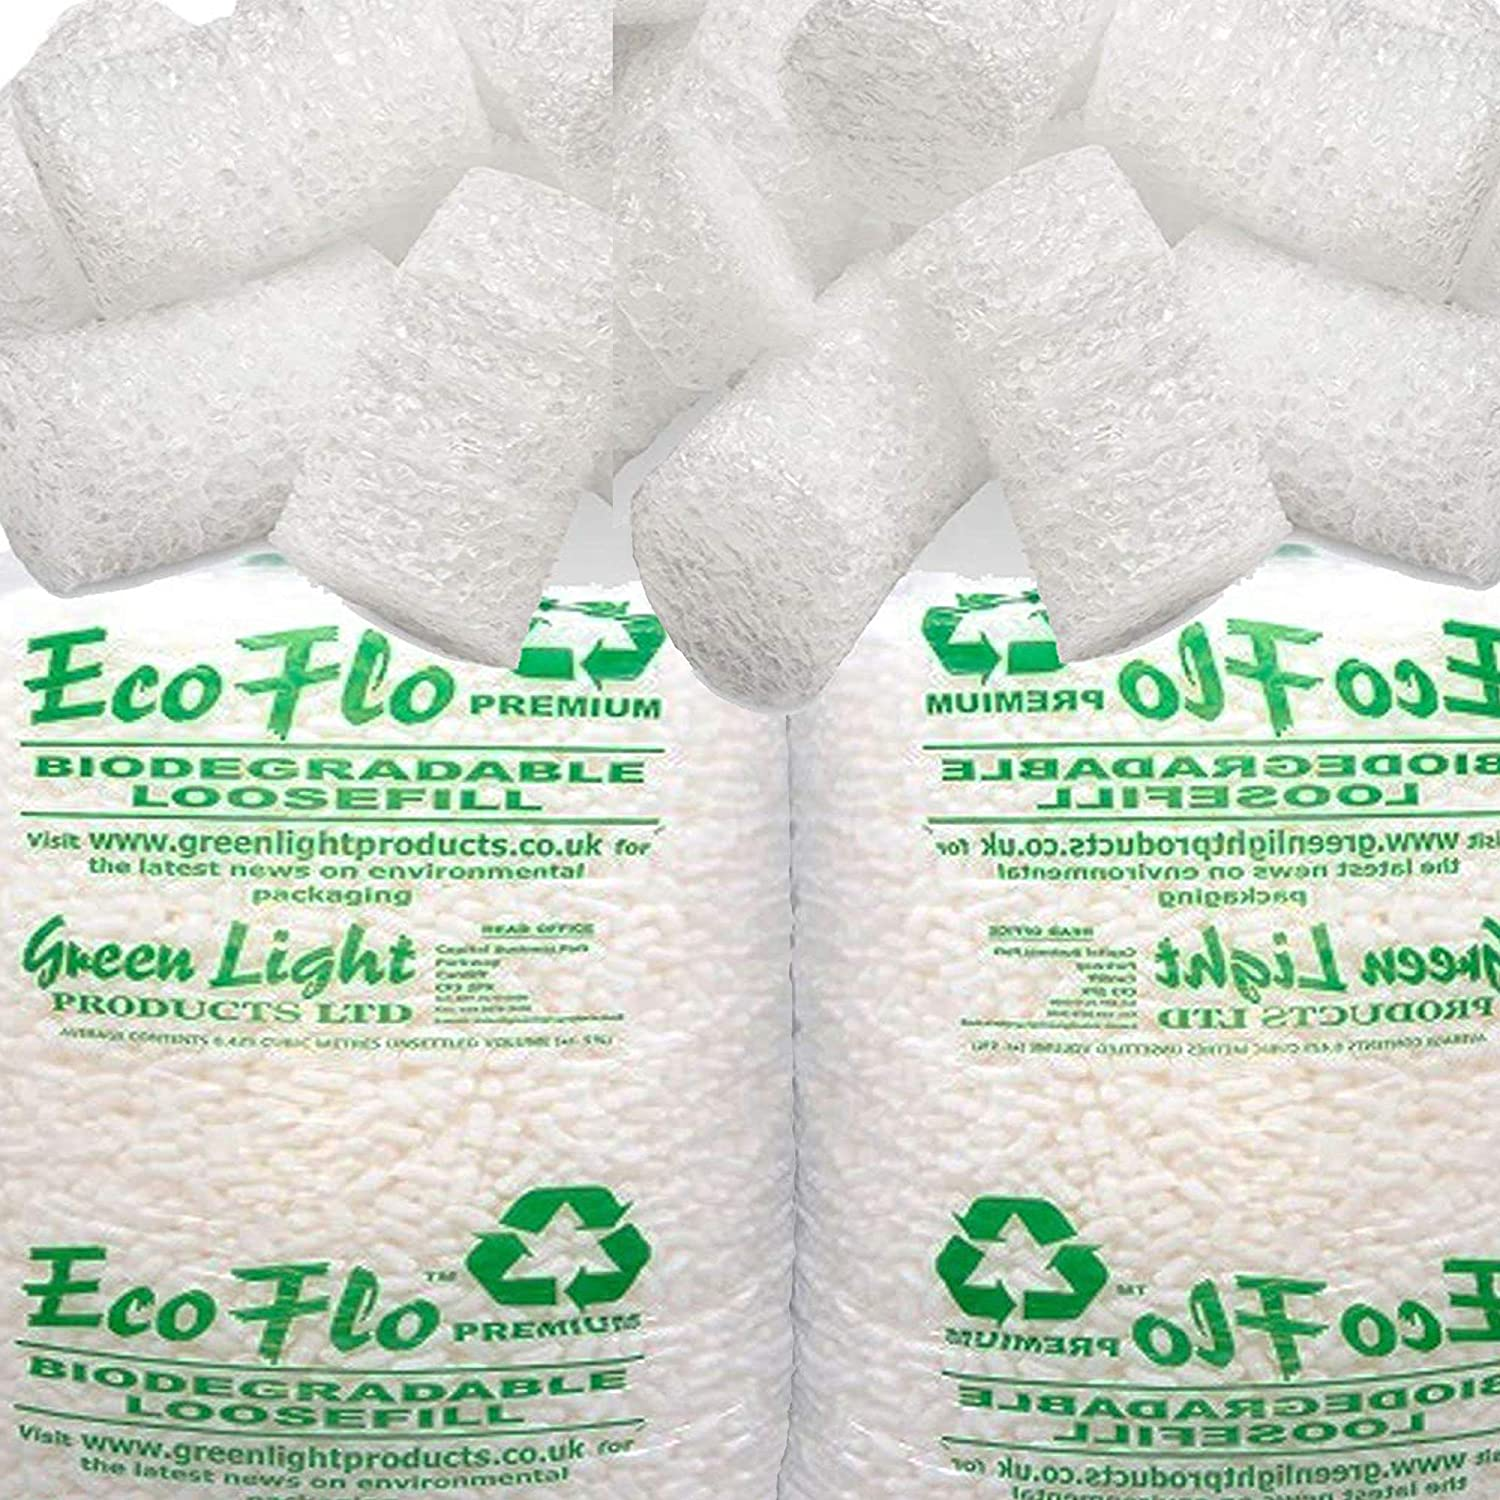 1 Large Bag 15 CUBIC FEET 100/% Recycled Protective Postal Mailing Packaging Packing Void Loose Fill Filler Filling Supplies Of Flopak Polystyrene Foam Packing Peanuts